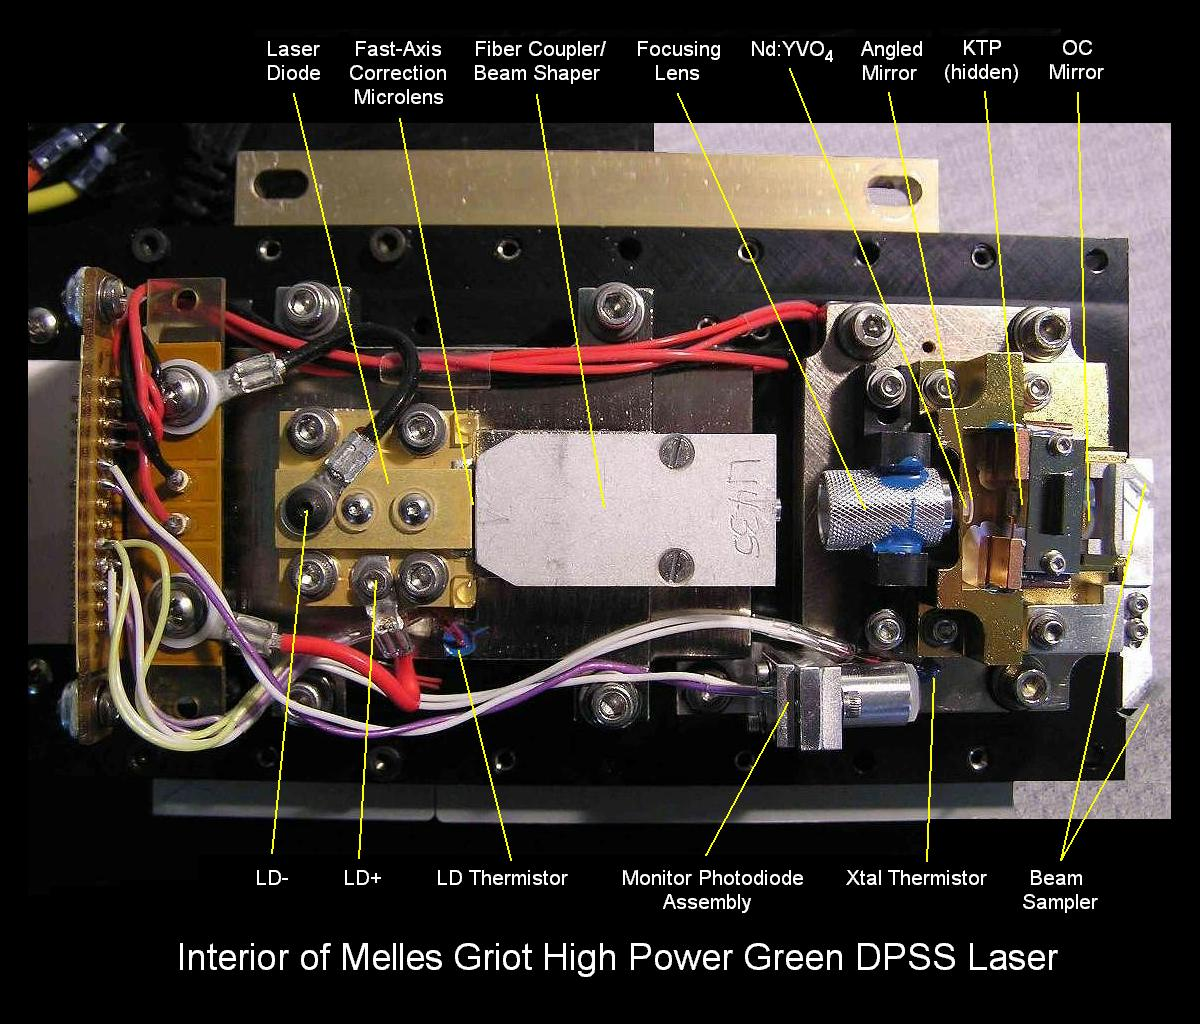 Sam's Laser FAQ - Commercial Solid State Lasers